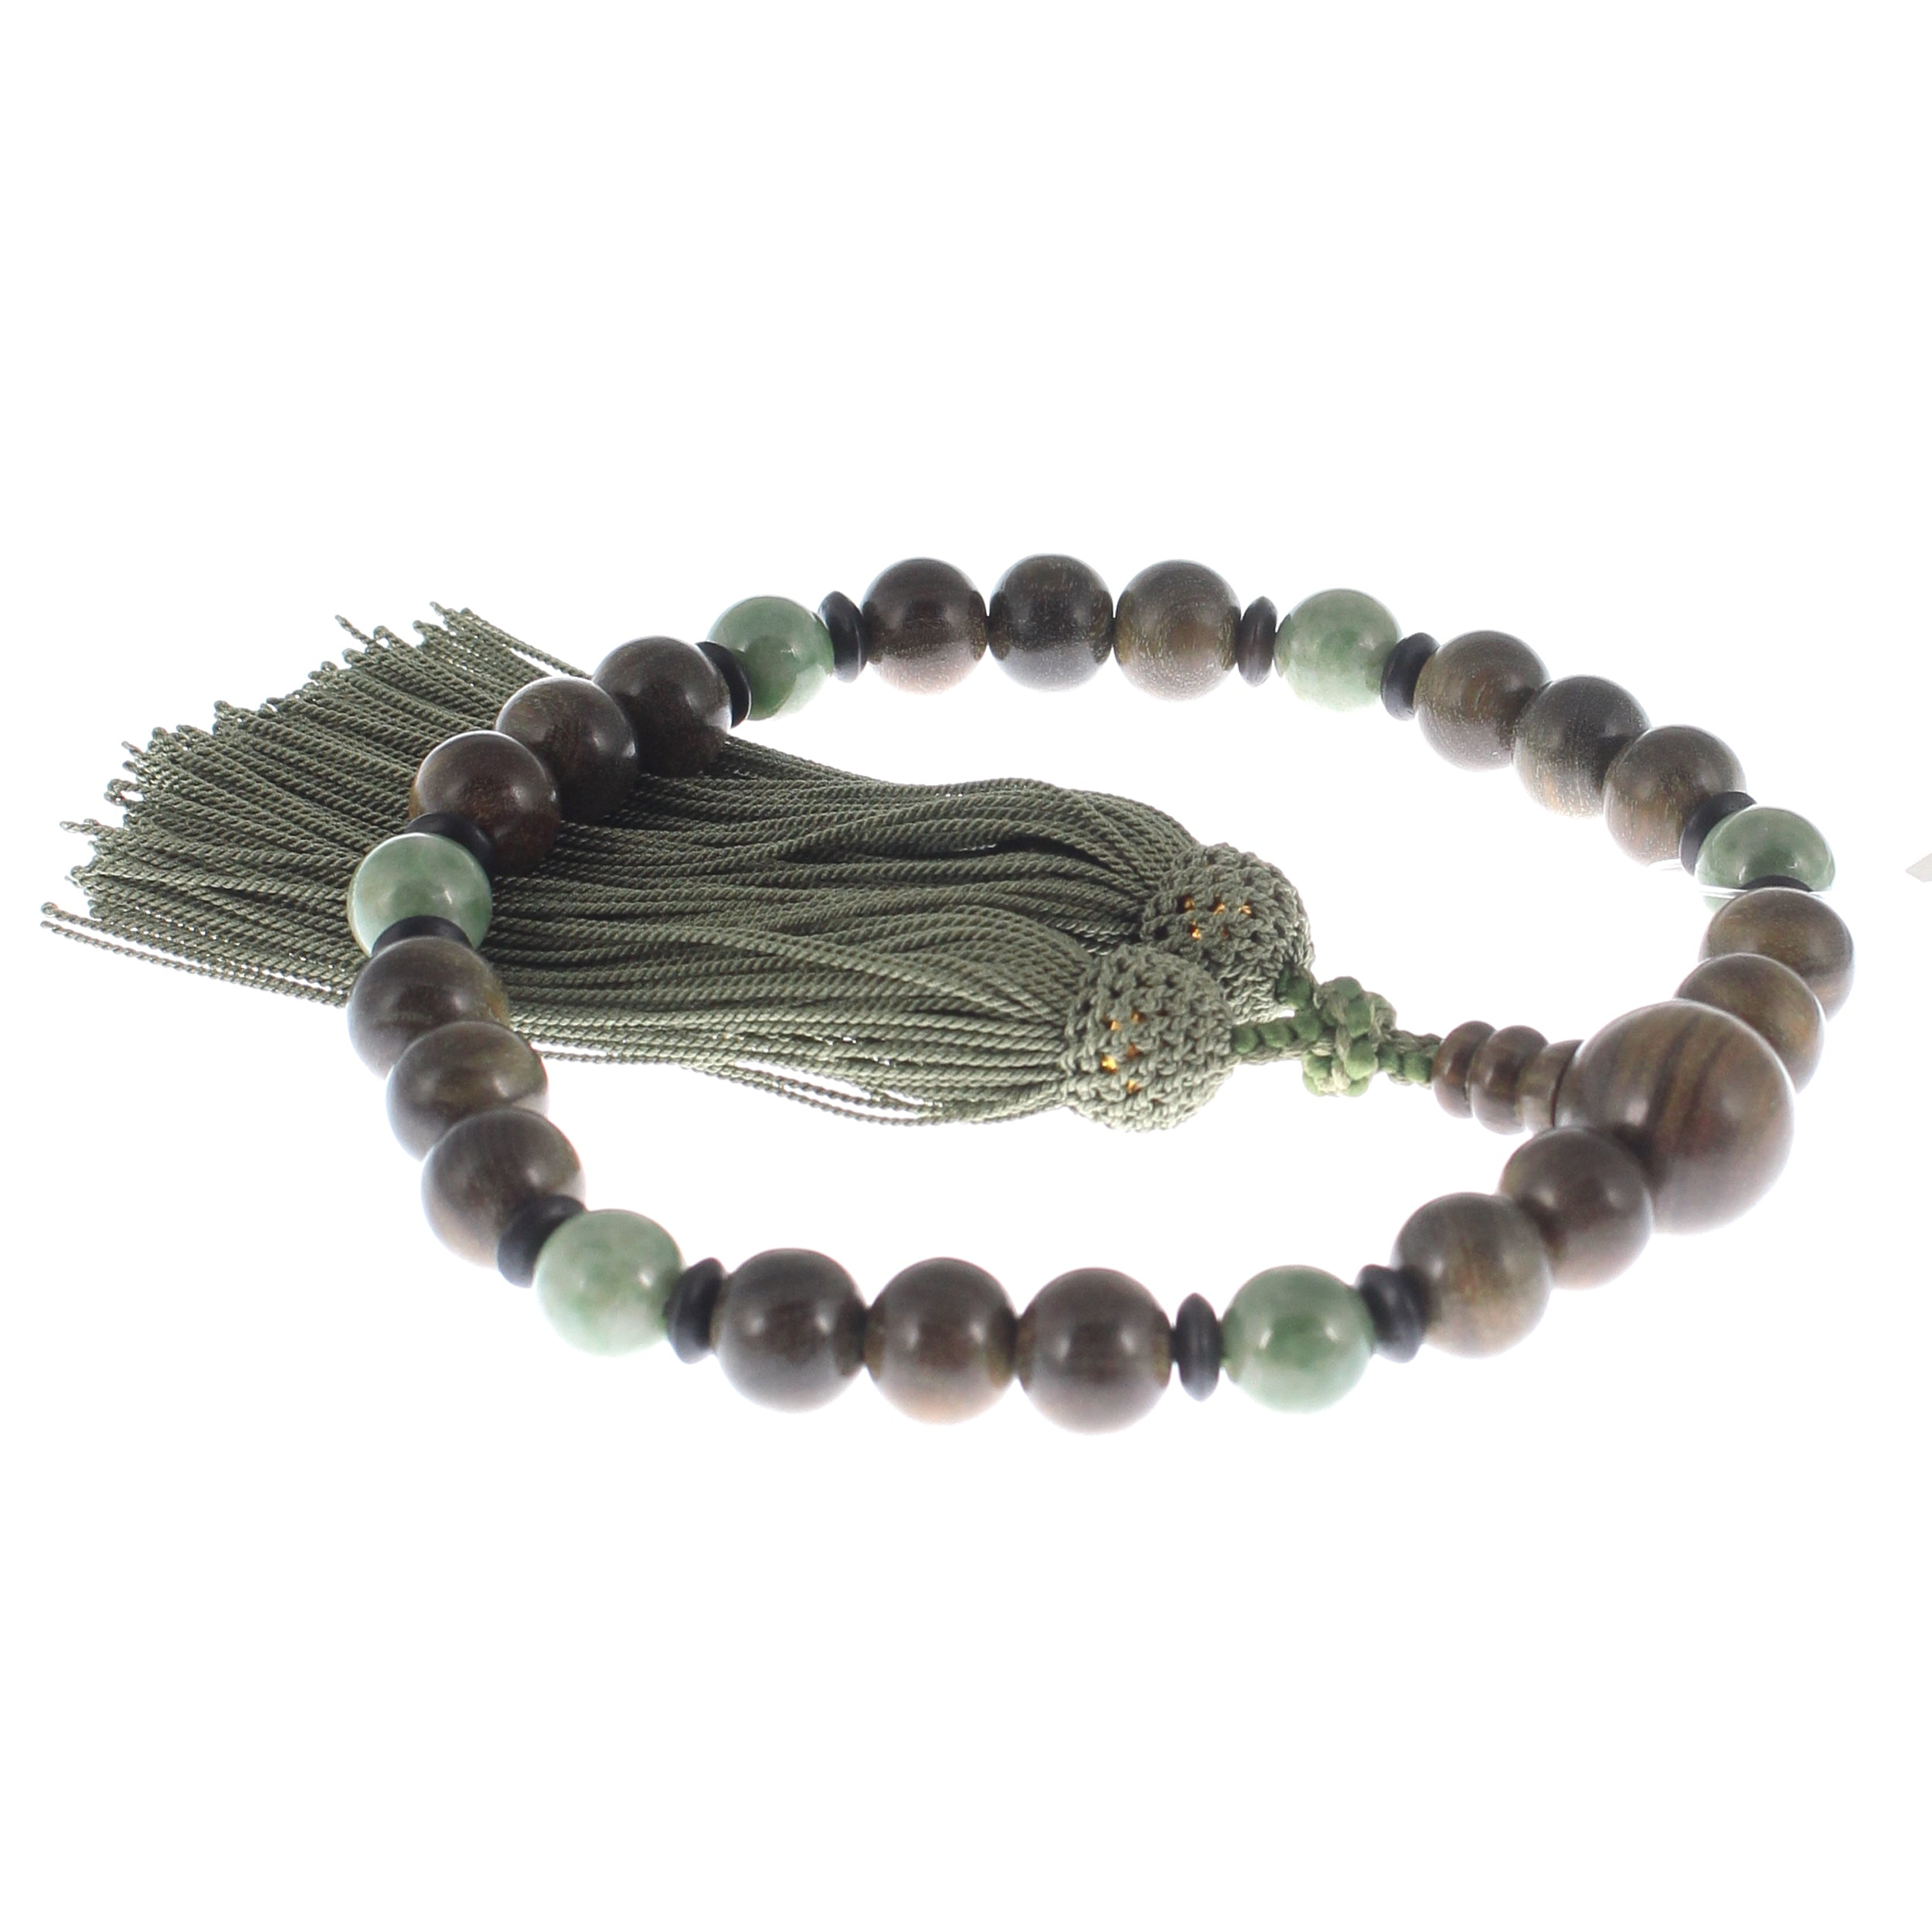 jade mala fashion product yoga from pendant gongxumei beads dhgate and bracelet bracelets white women men